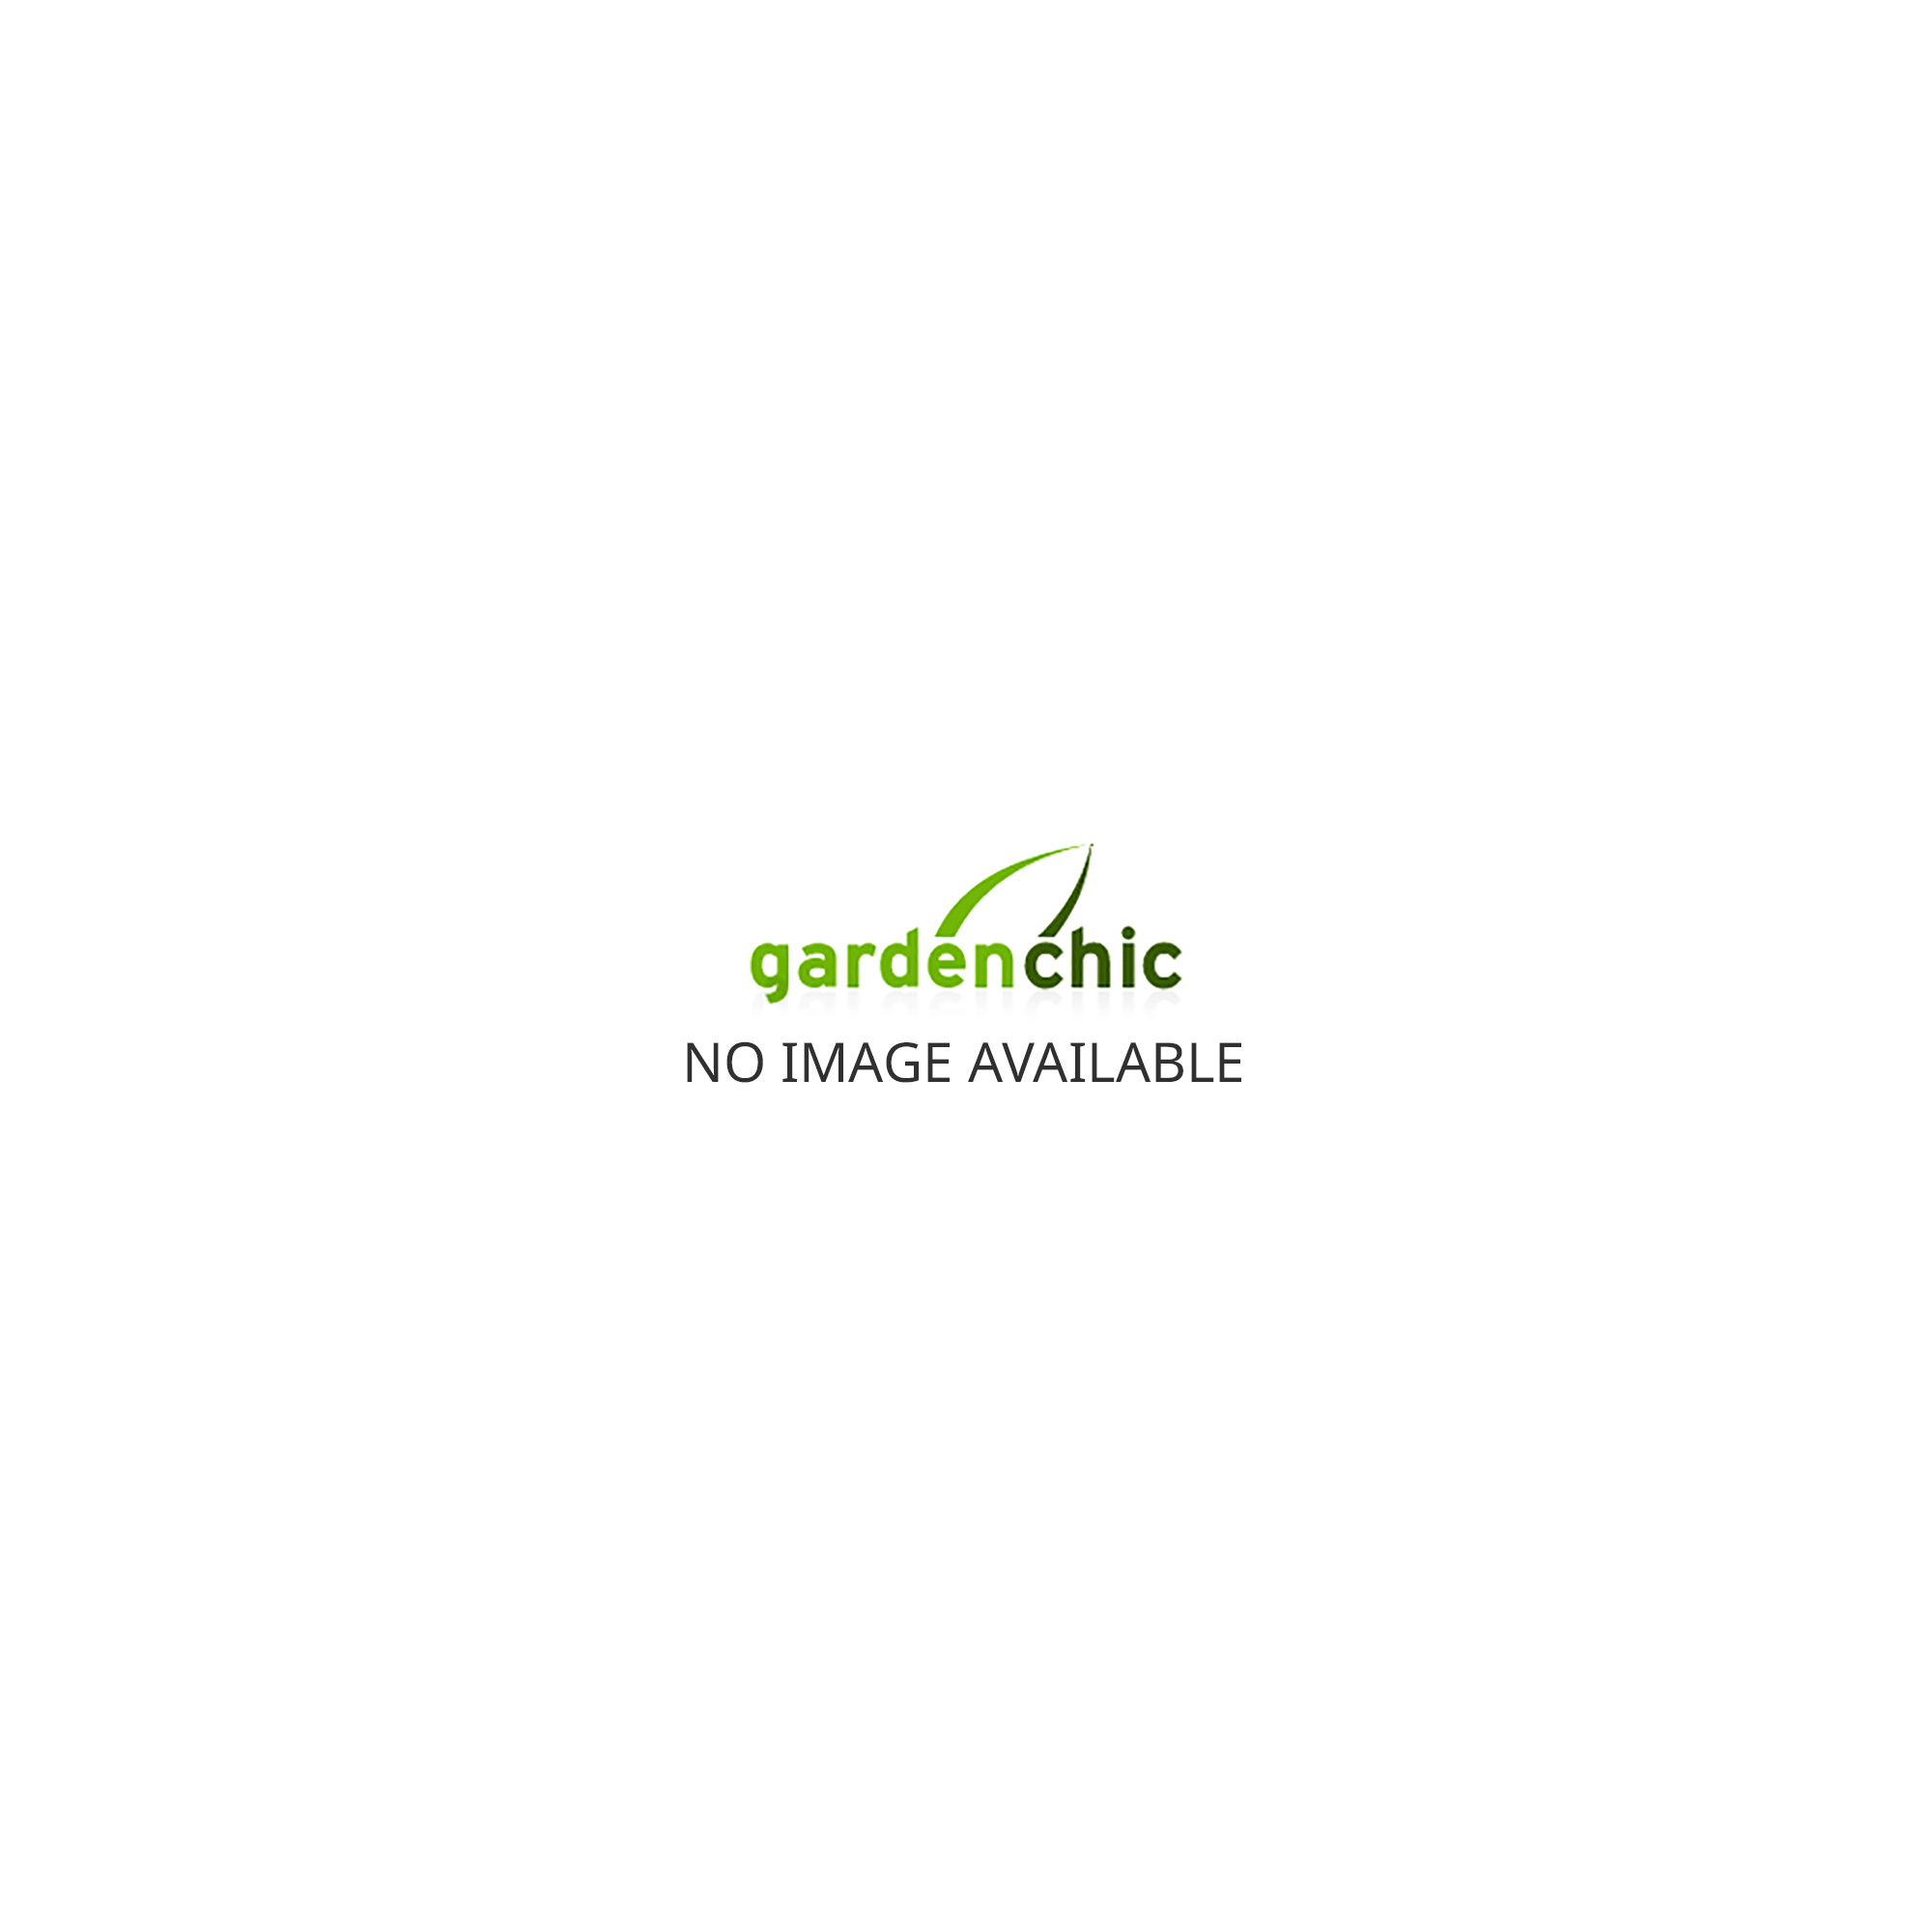 Haemmerlin Aktiv Extreme Alpha Original 90LTR Wheelbarrow